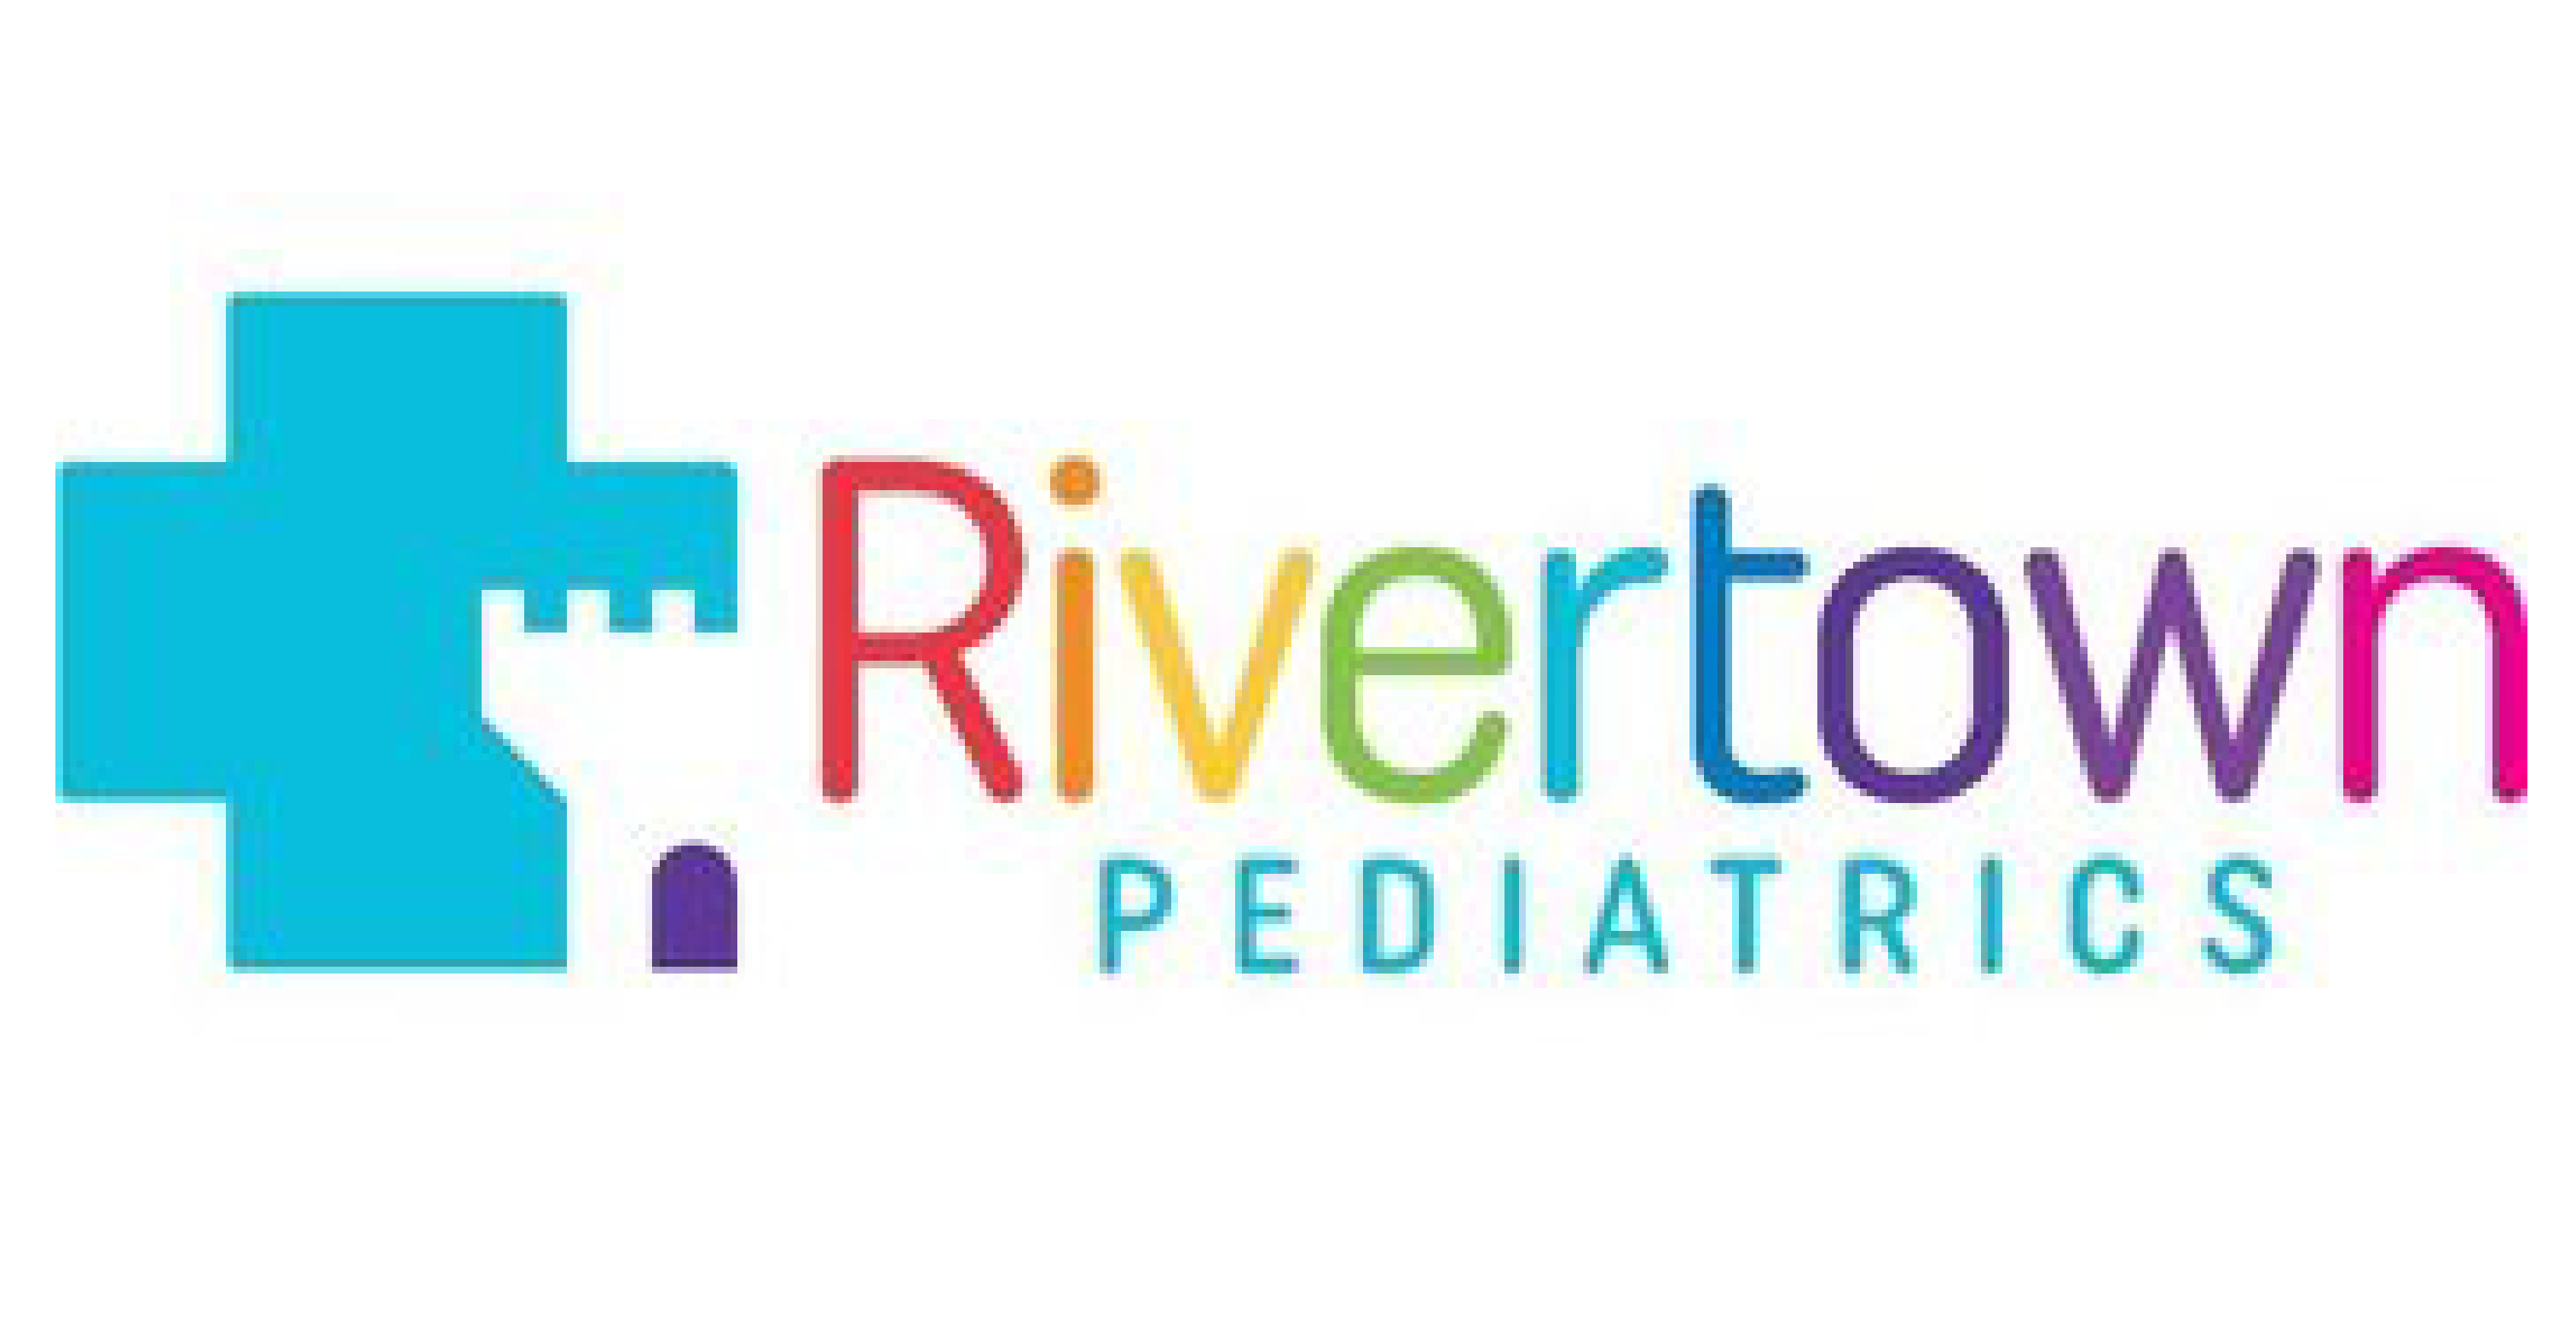 Rivertown Pediatrics